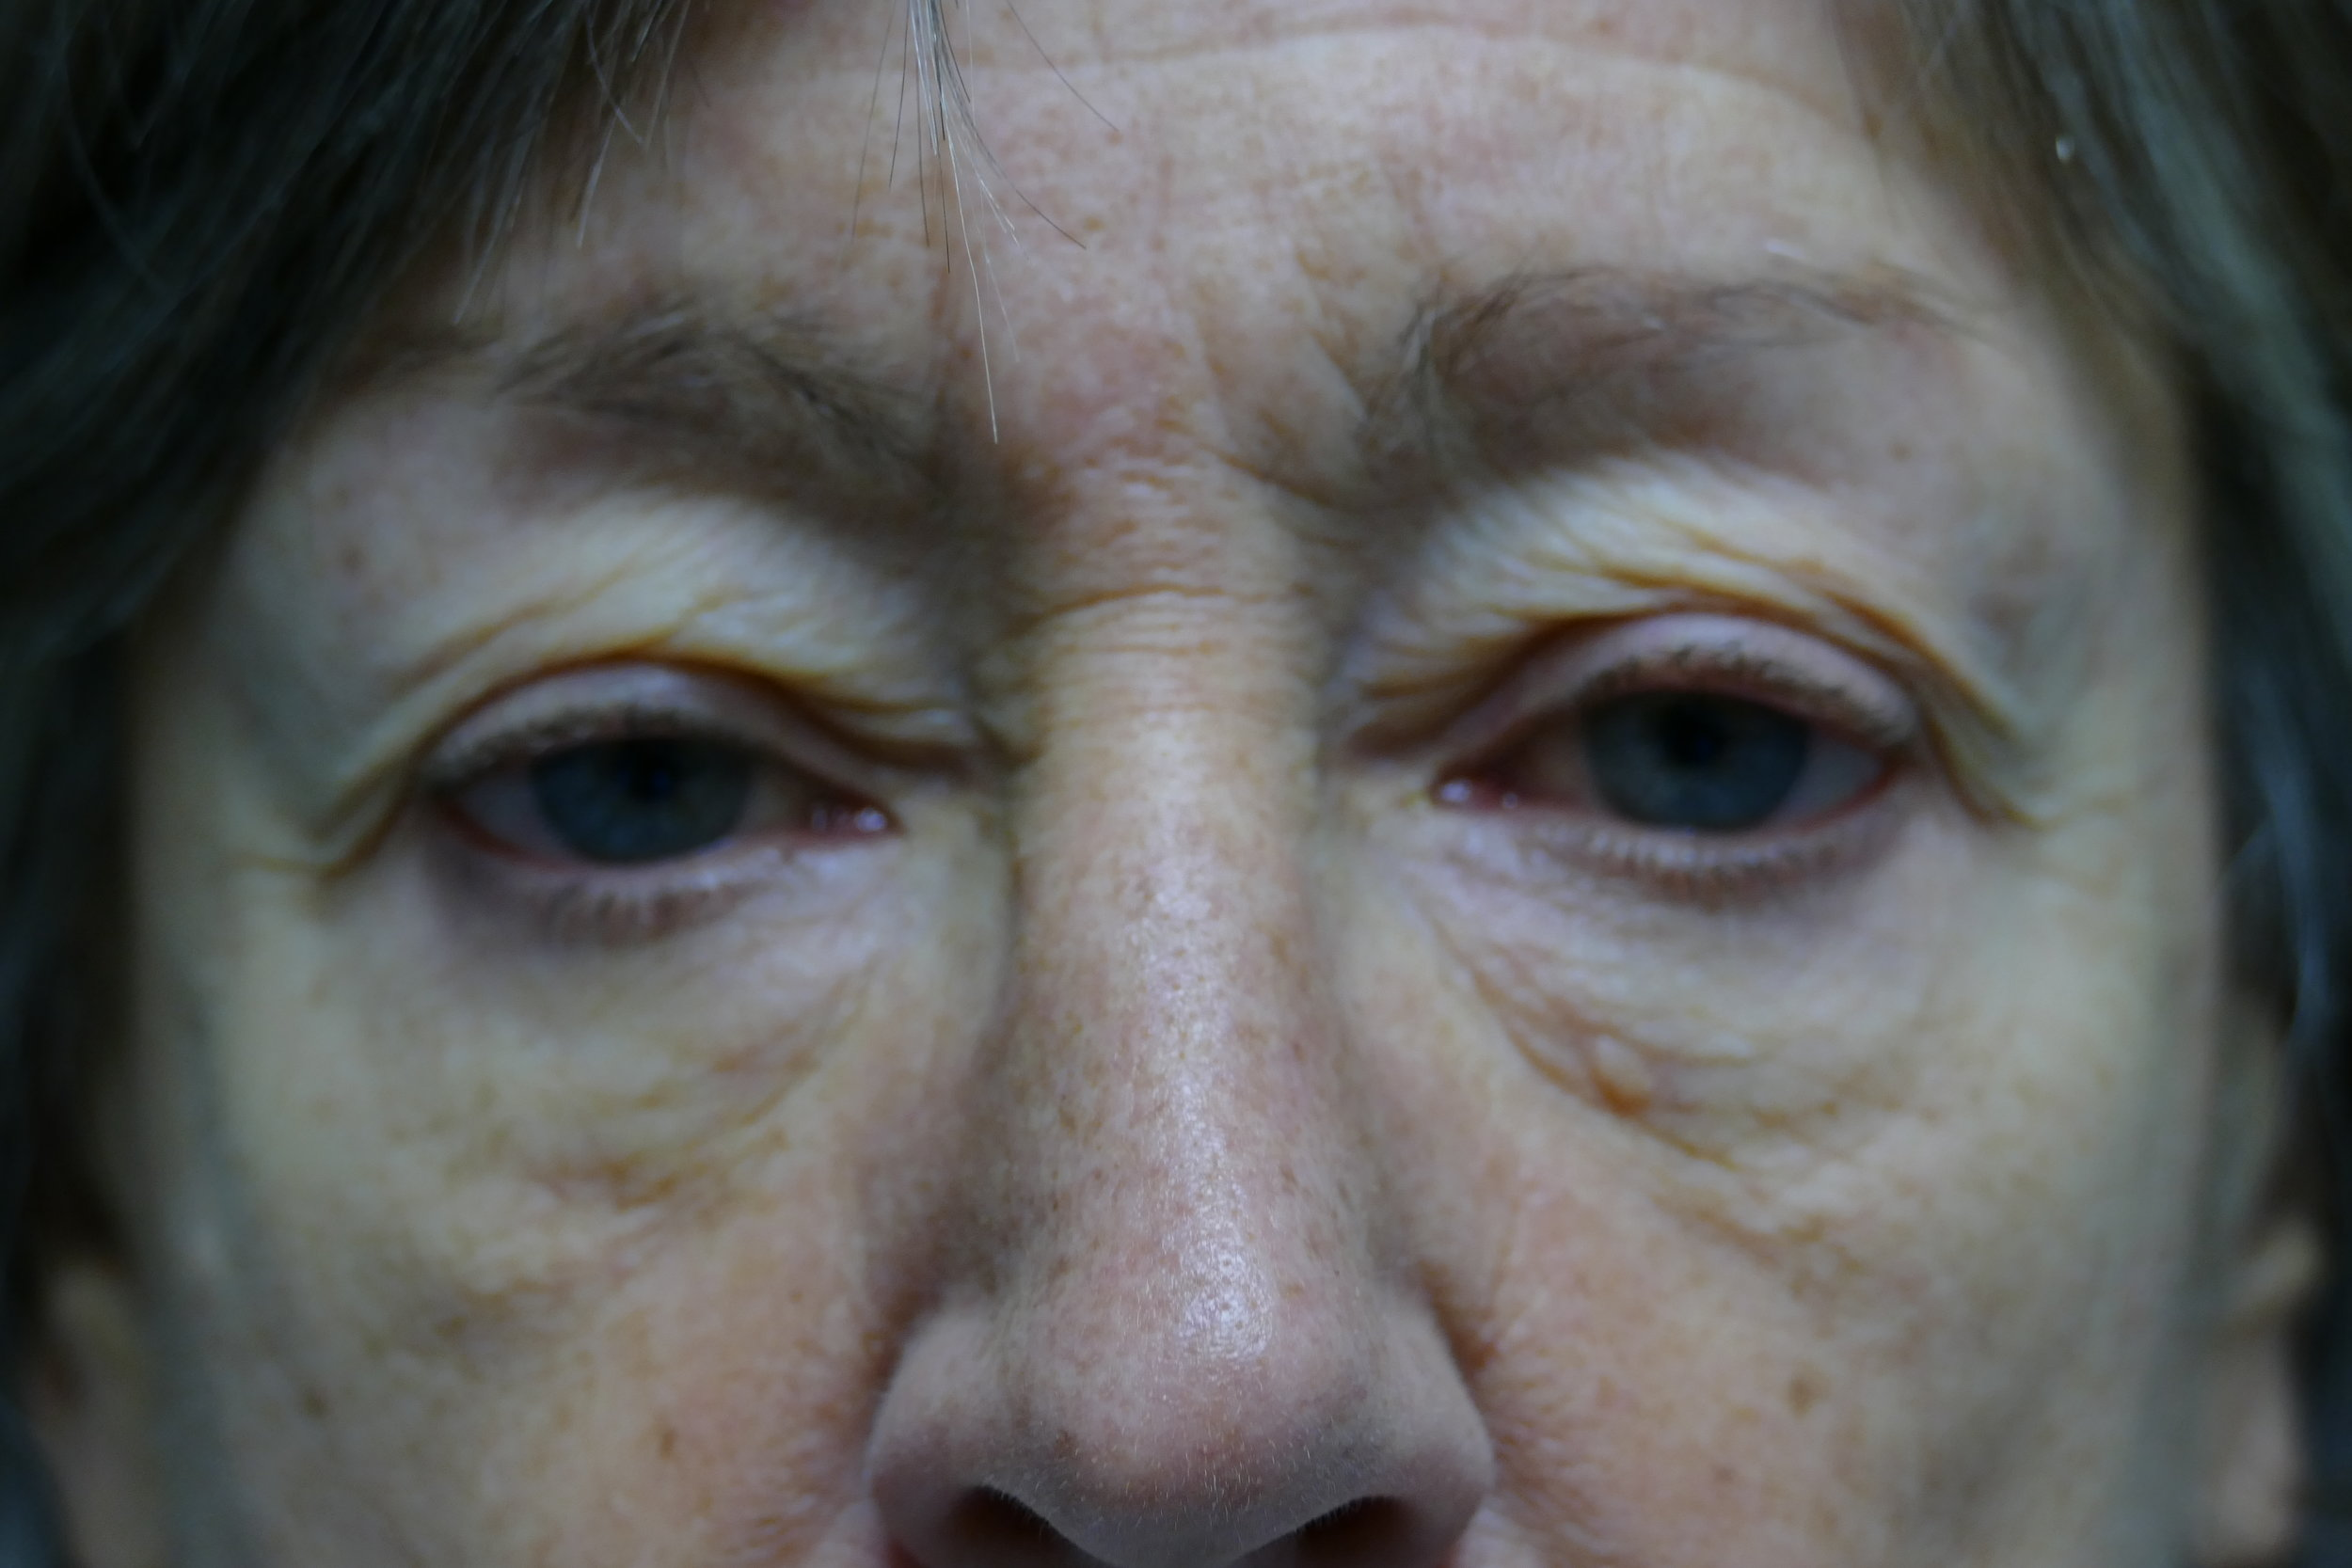 60 year old female before upper eyelid surgery.